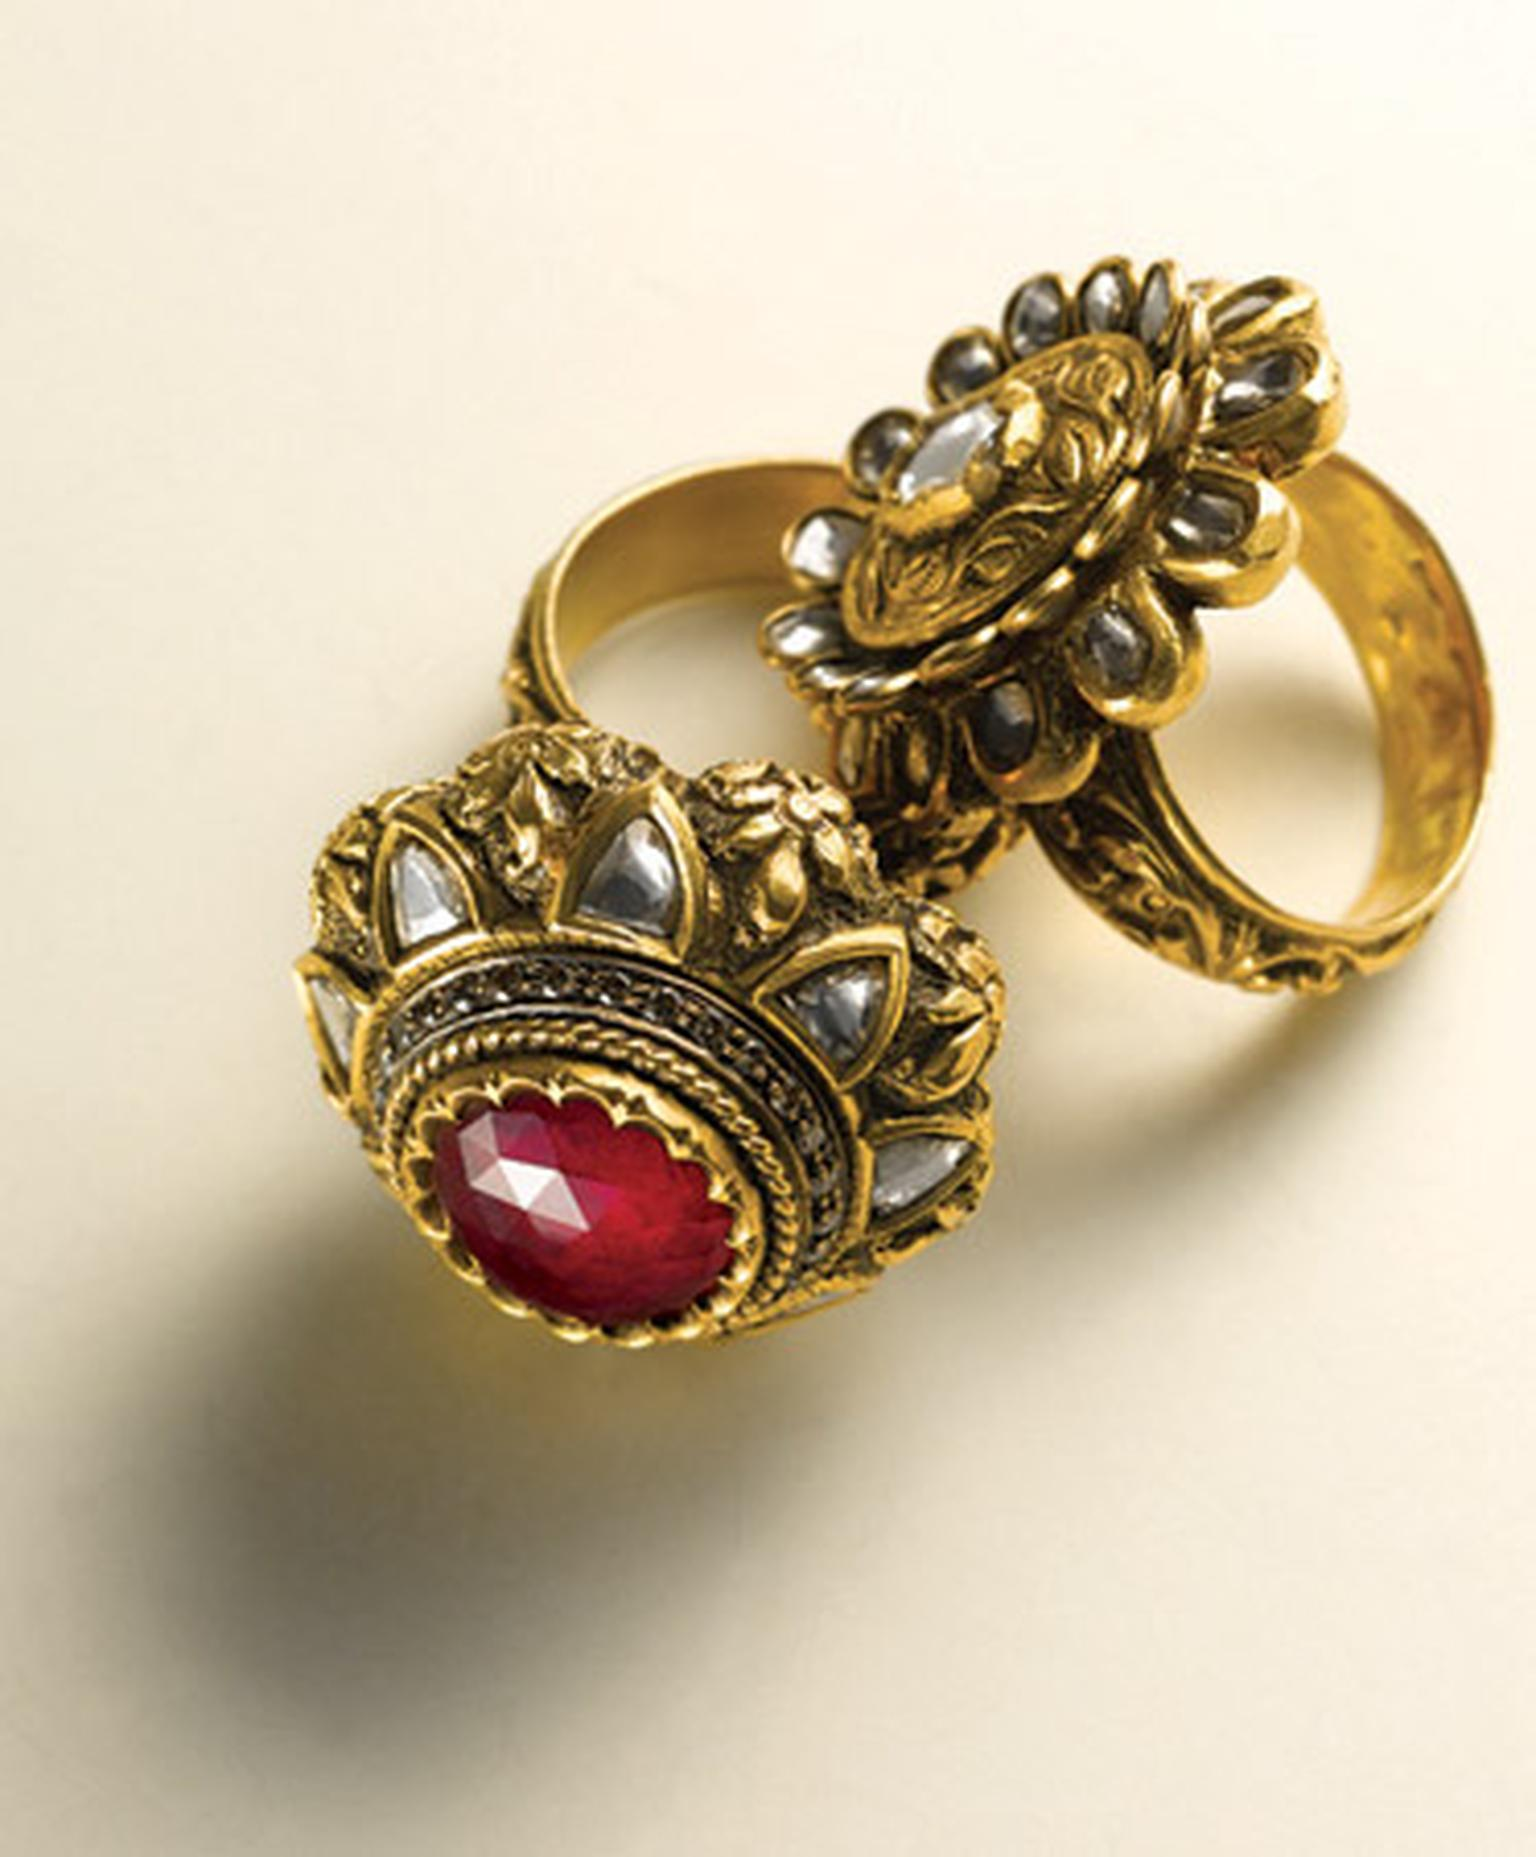 Zoya-13--Rings-from-Rajasthan-collection.jpg